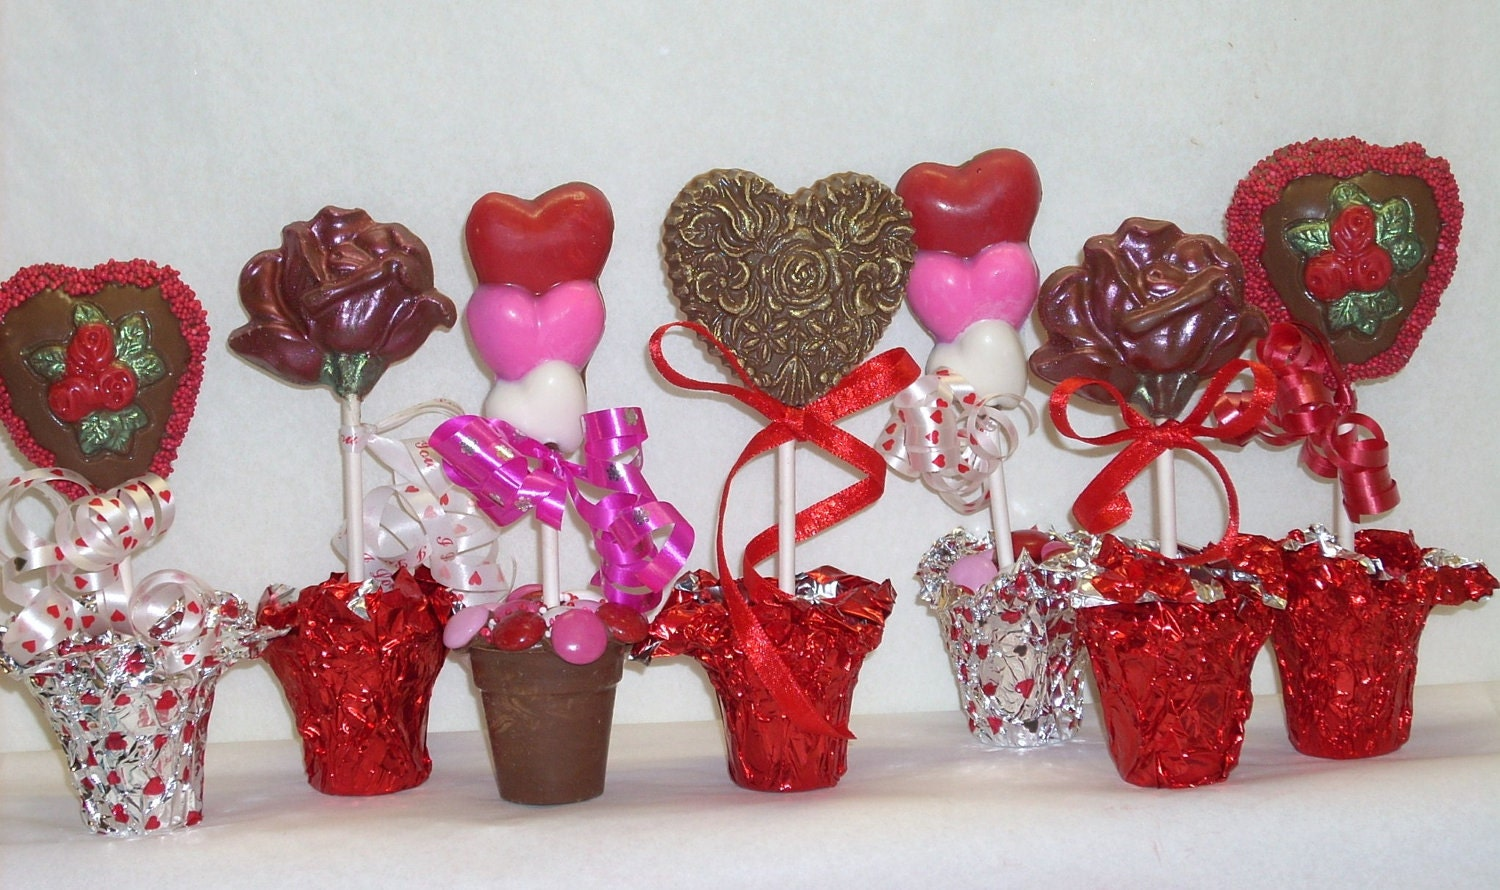 Valentine Chocolate Blooming Hearts and Flowers Lollipops